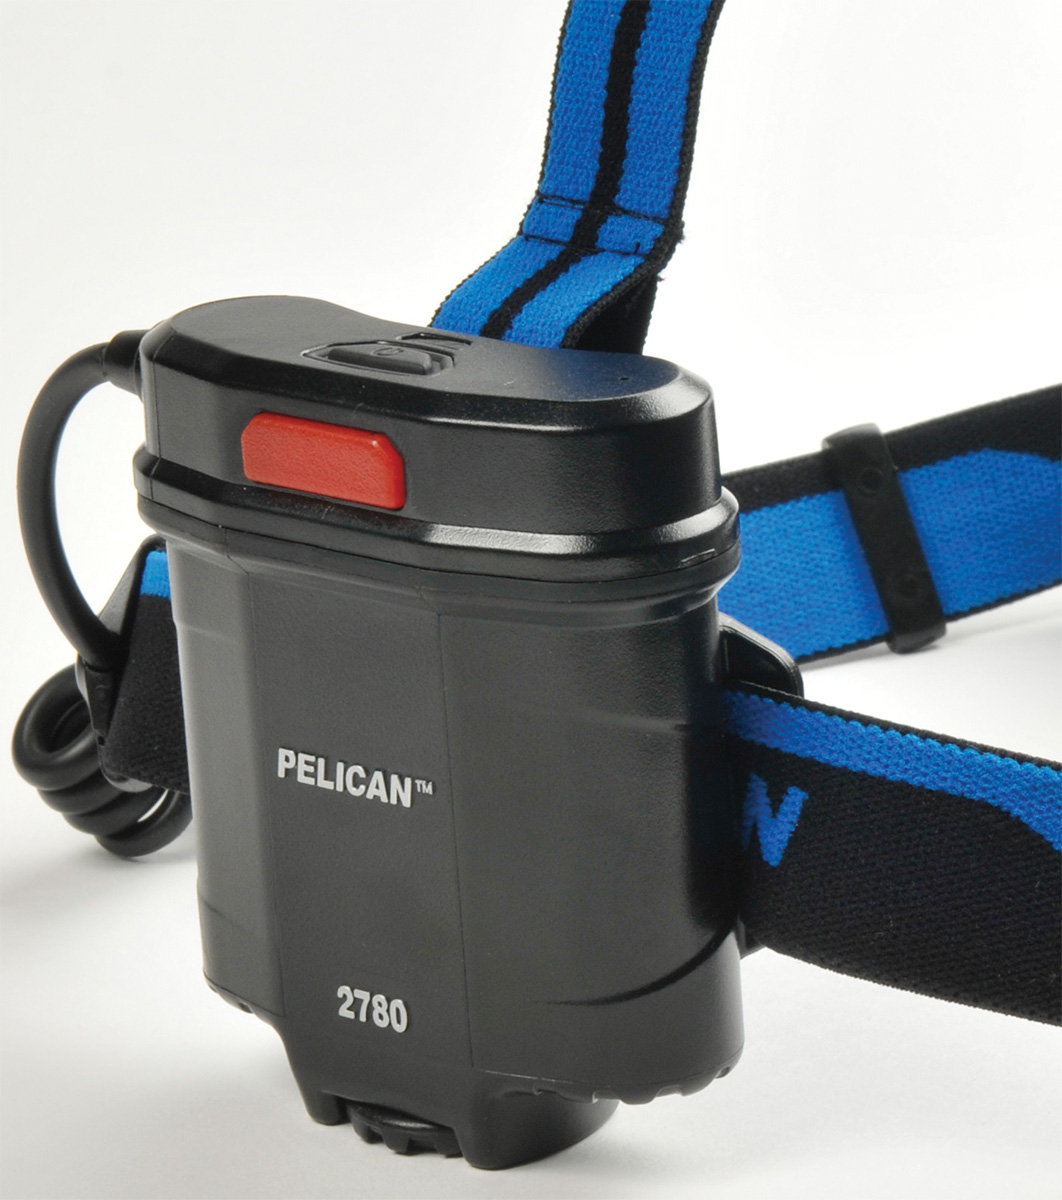 pelican peli products 2780 best battery pack led headlamp